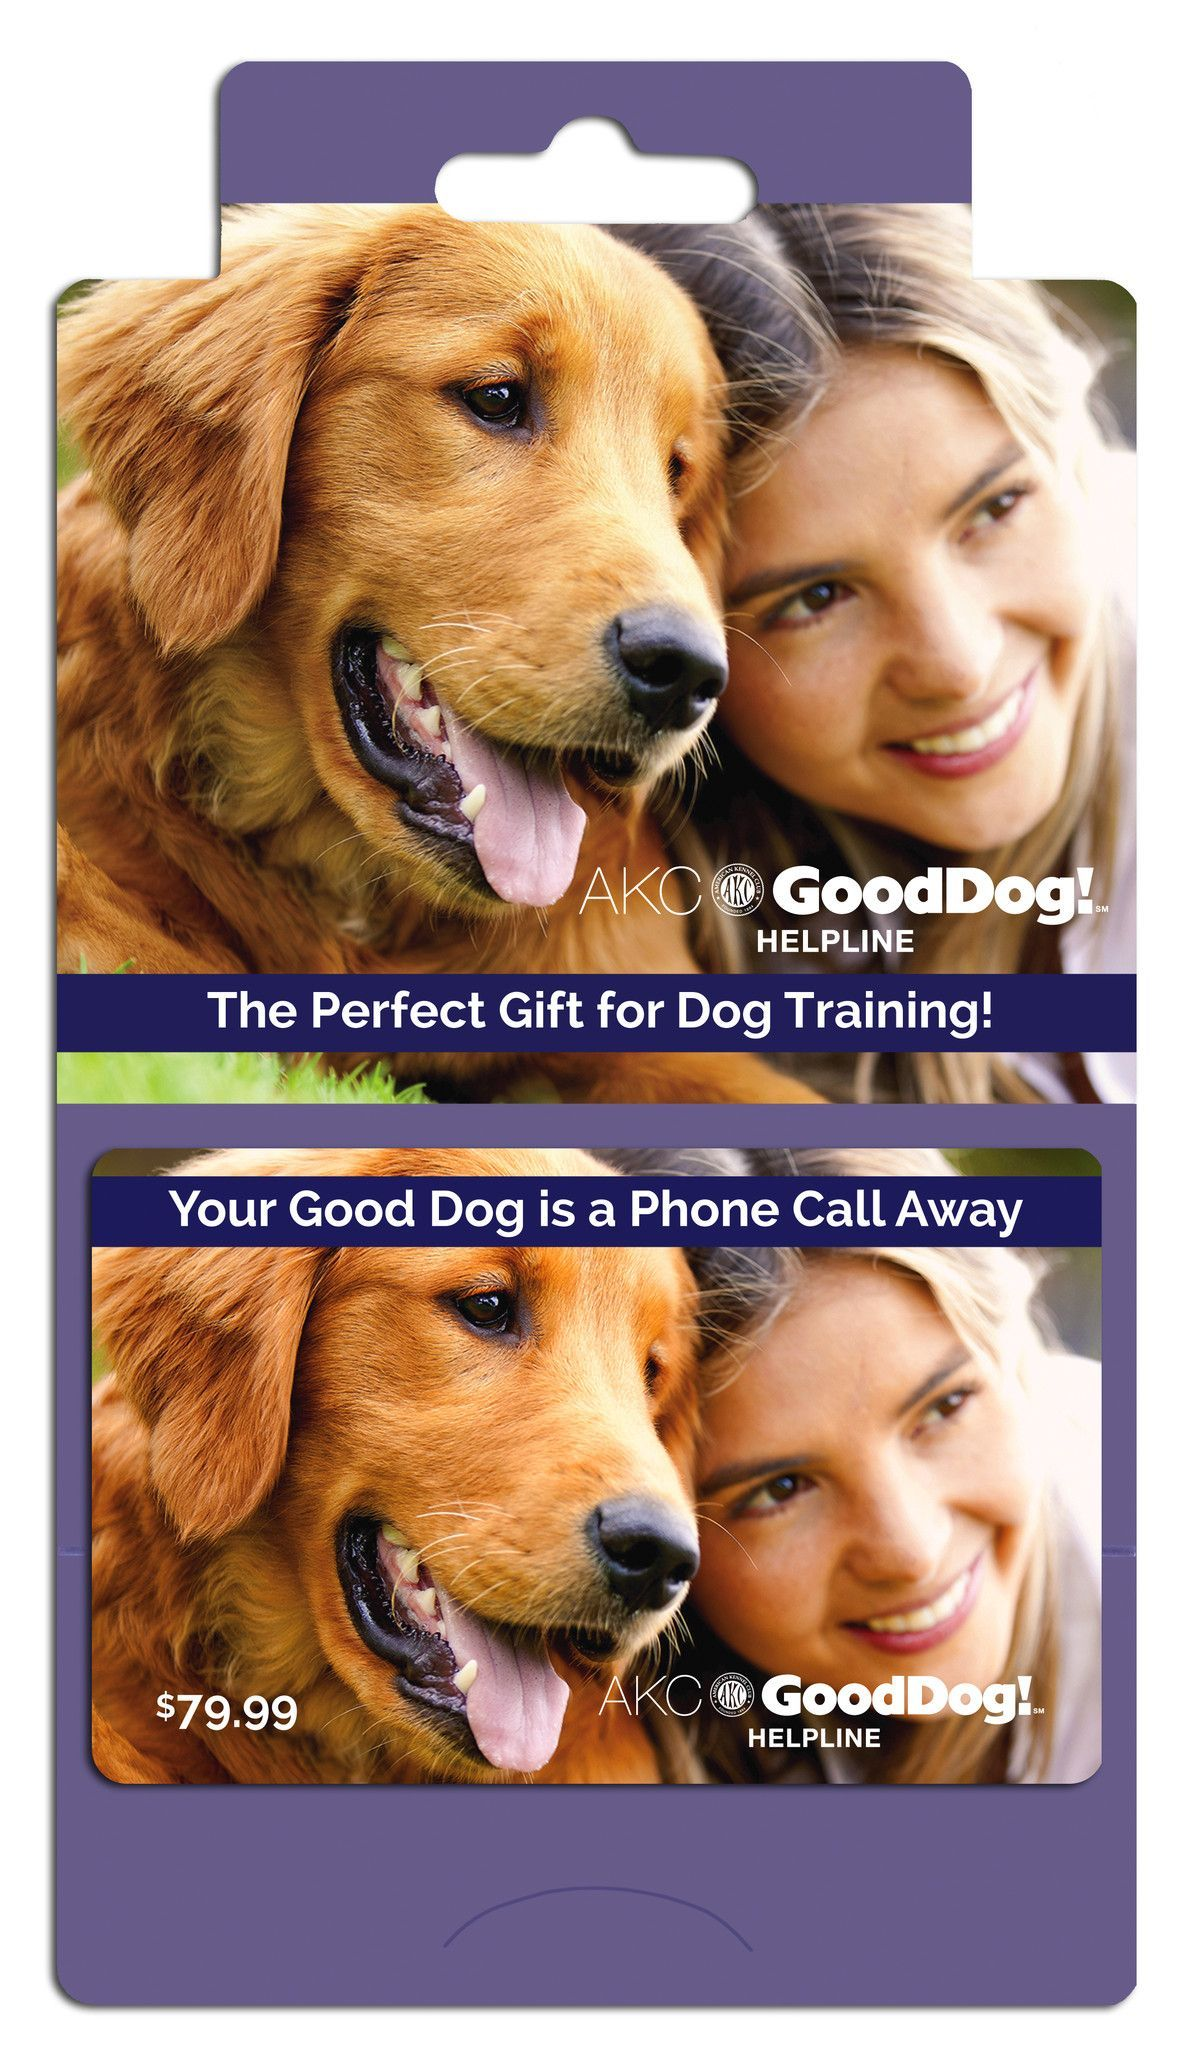 Giftcard Akc Gooddog Helpline Dog Training Pets Dog Training